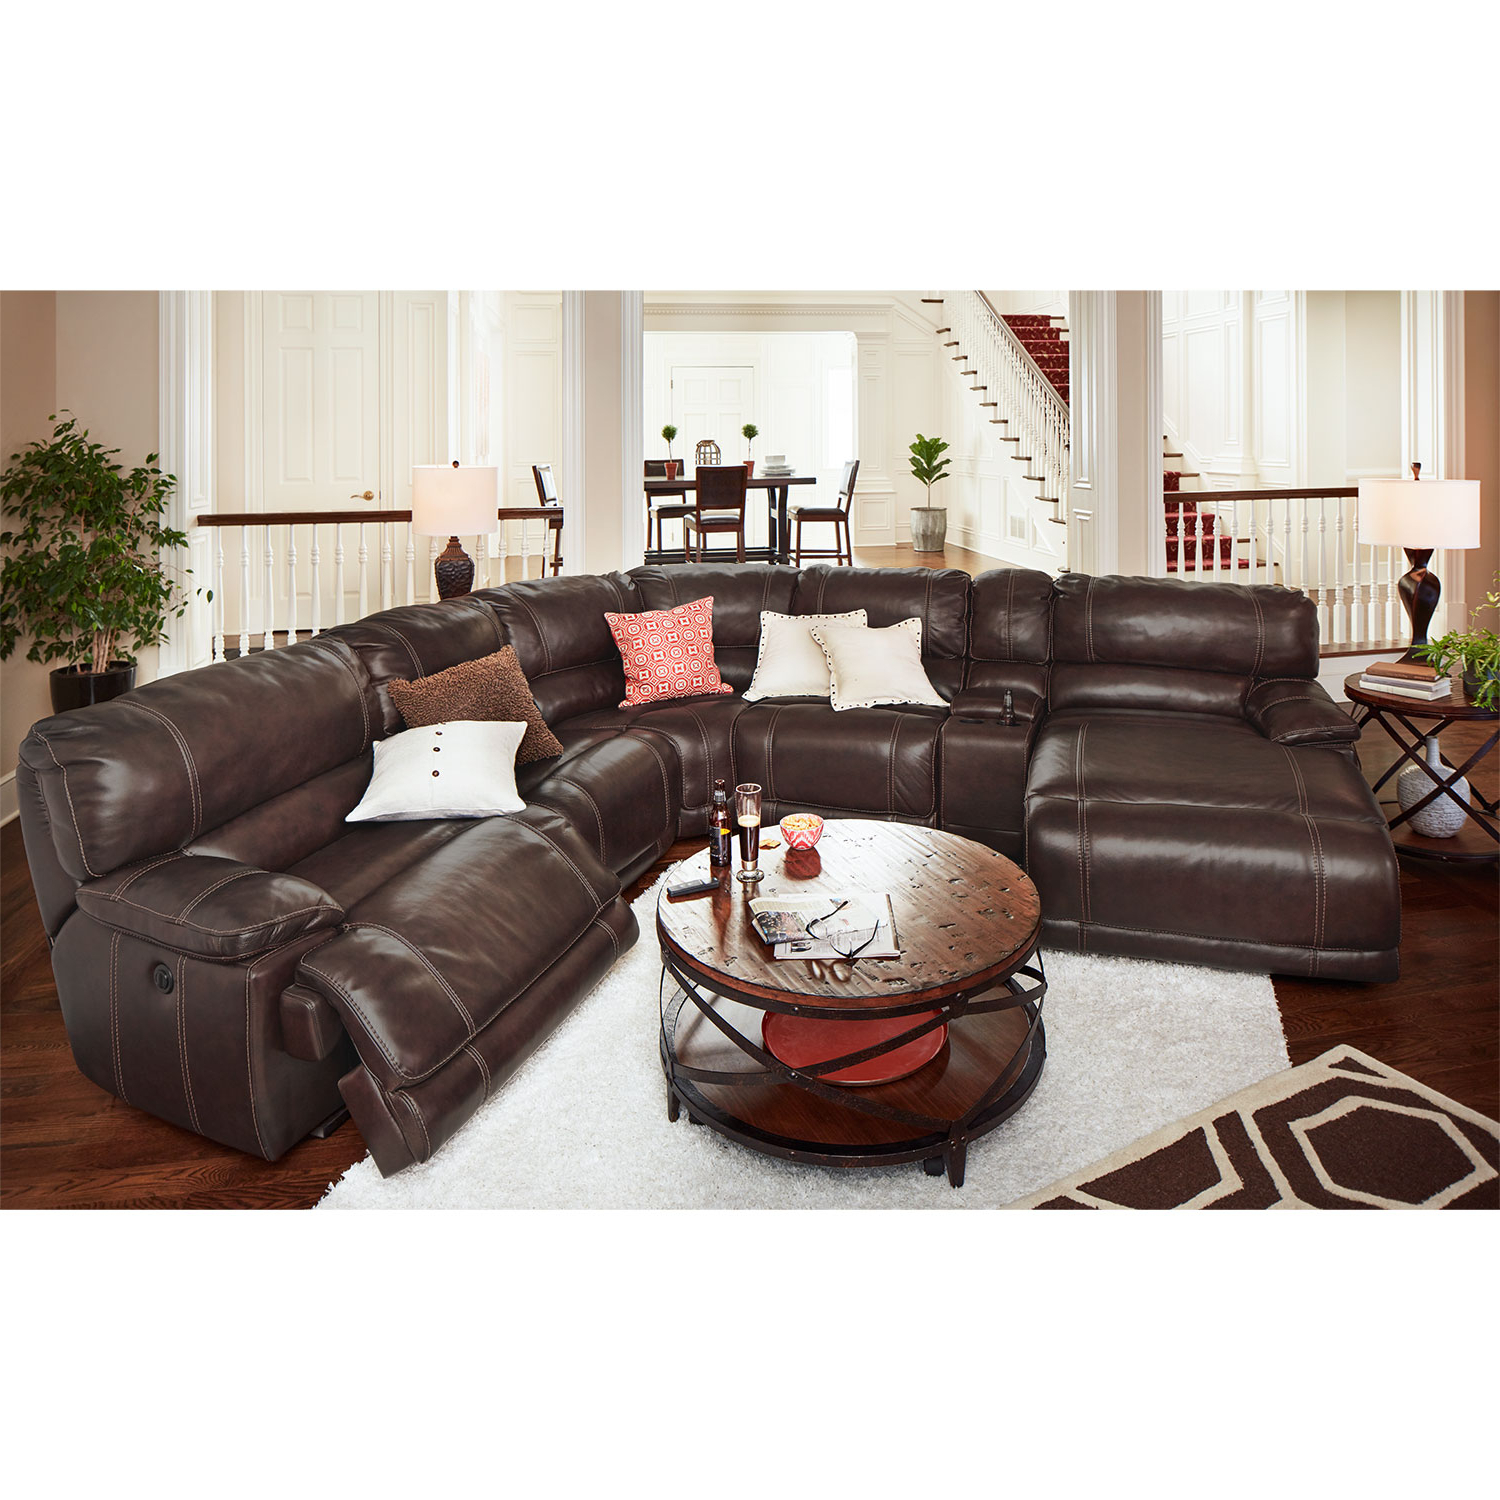 Trendy Denali Charcoal Grey 6 Piece Reclining Sectionals With 2 Power Headrests Throughout Power Sectional – Tidex (Gallery 17 of 20)